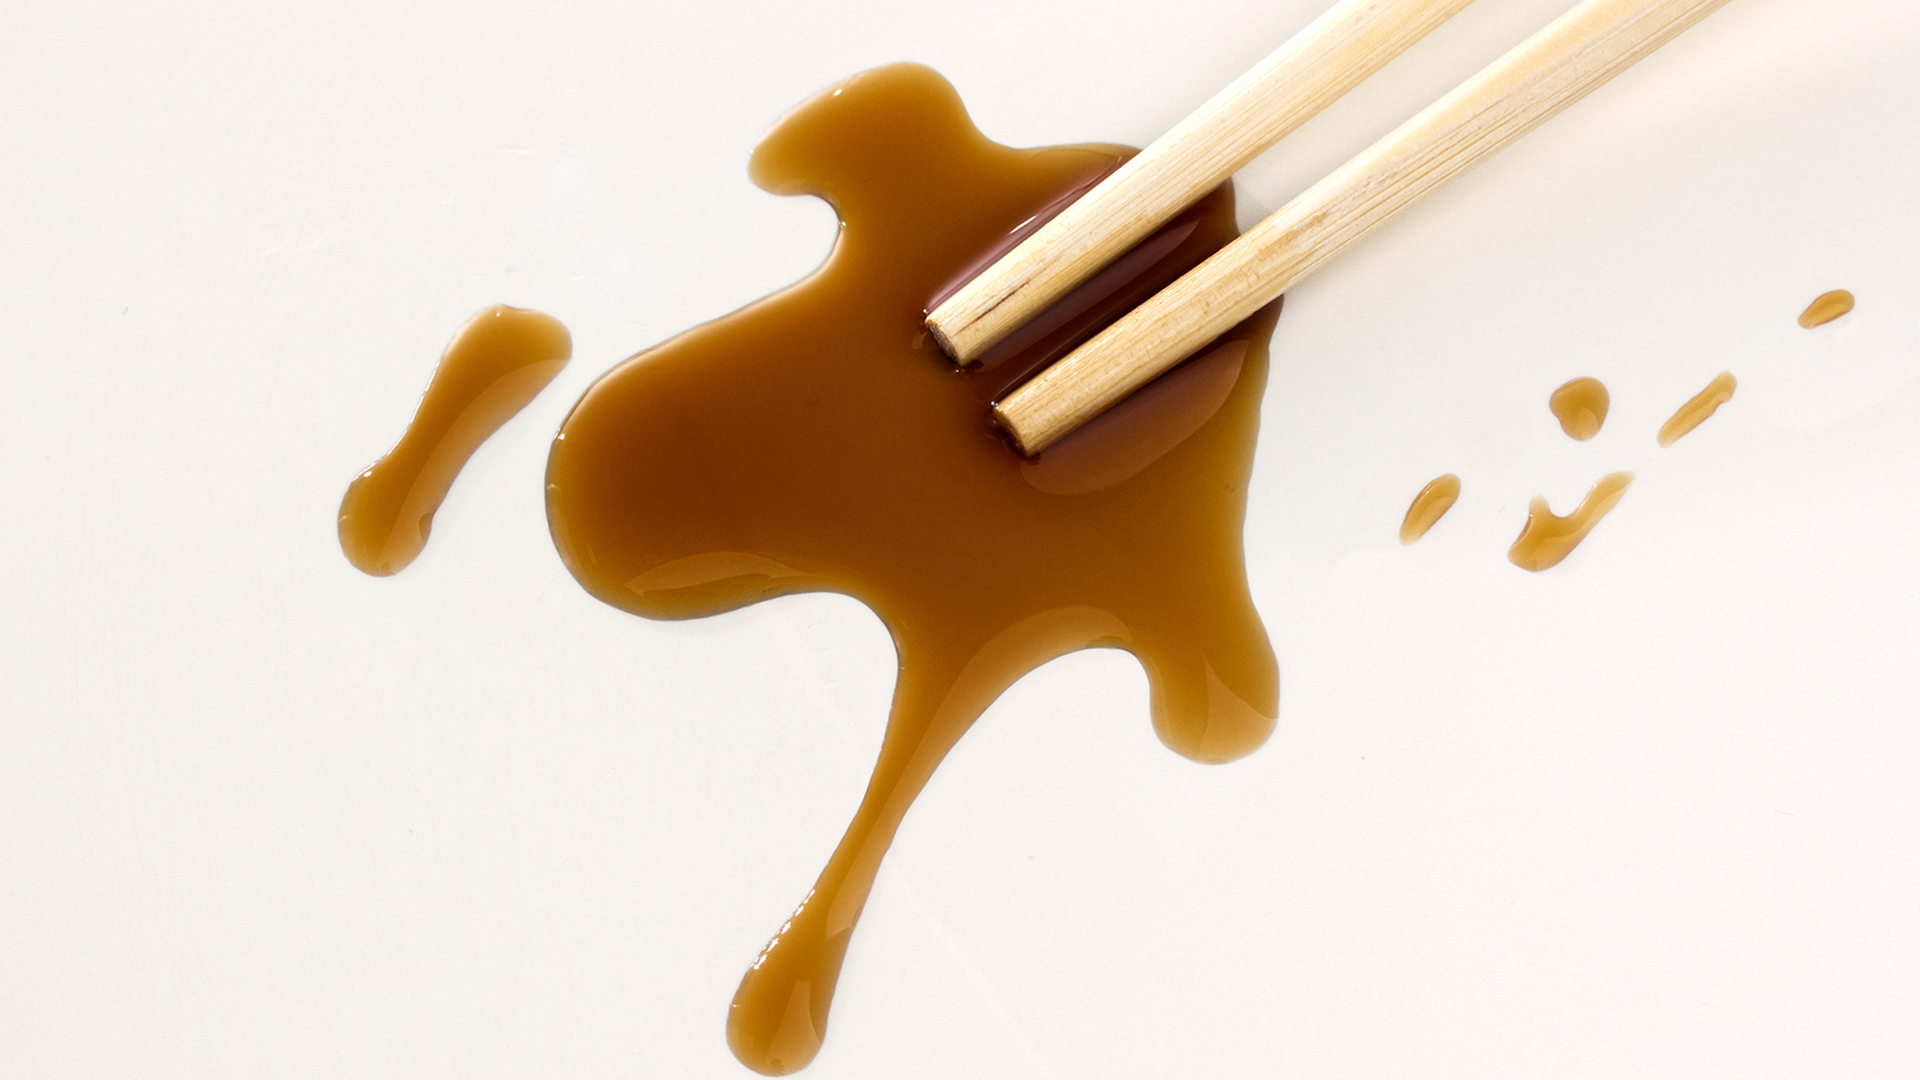 How To Remove Soy Sauce Stains From Clothing Furniture